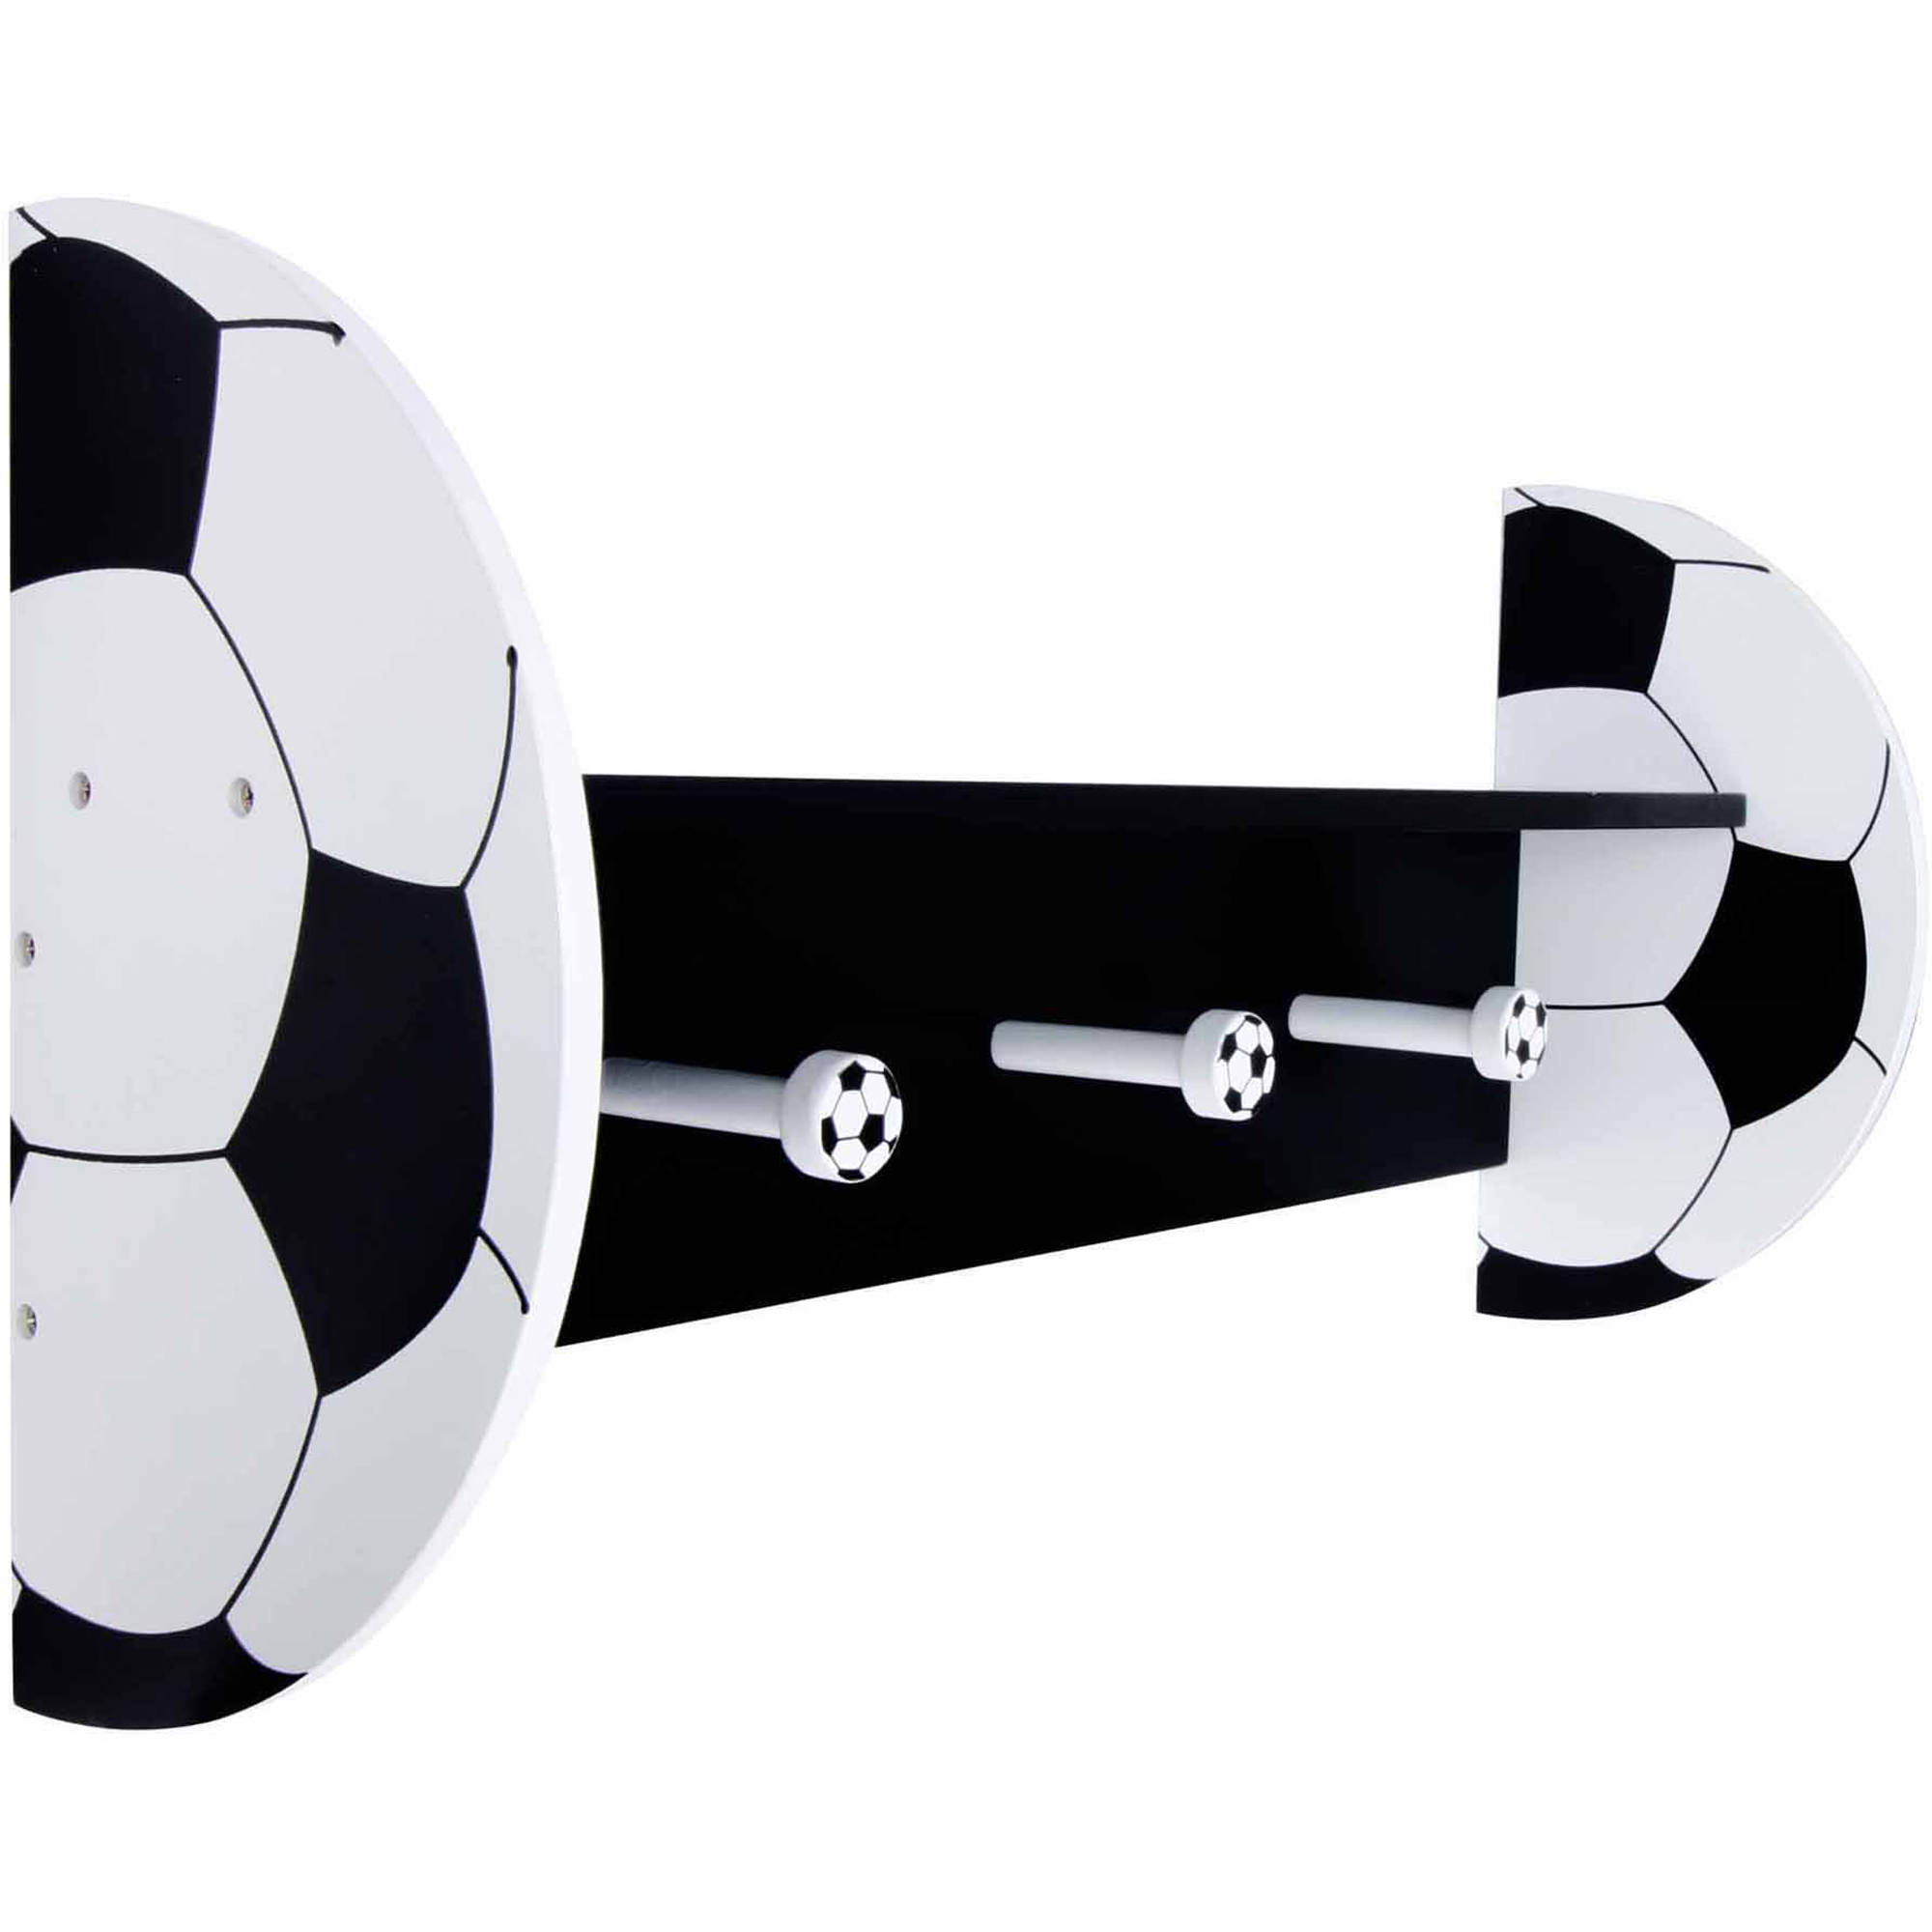 Trend Lab Soccer Wall Shelf with Pegs